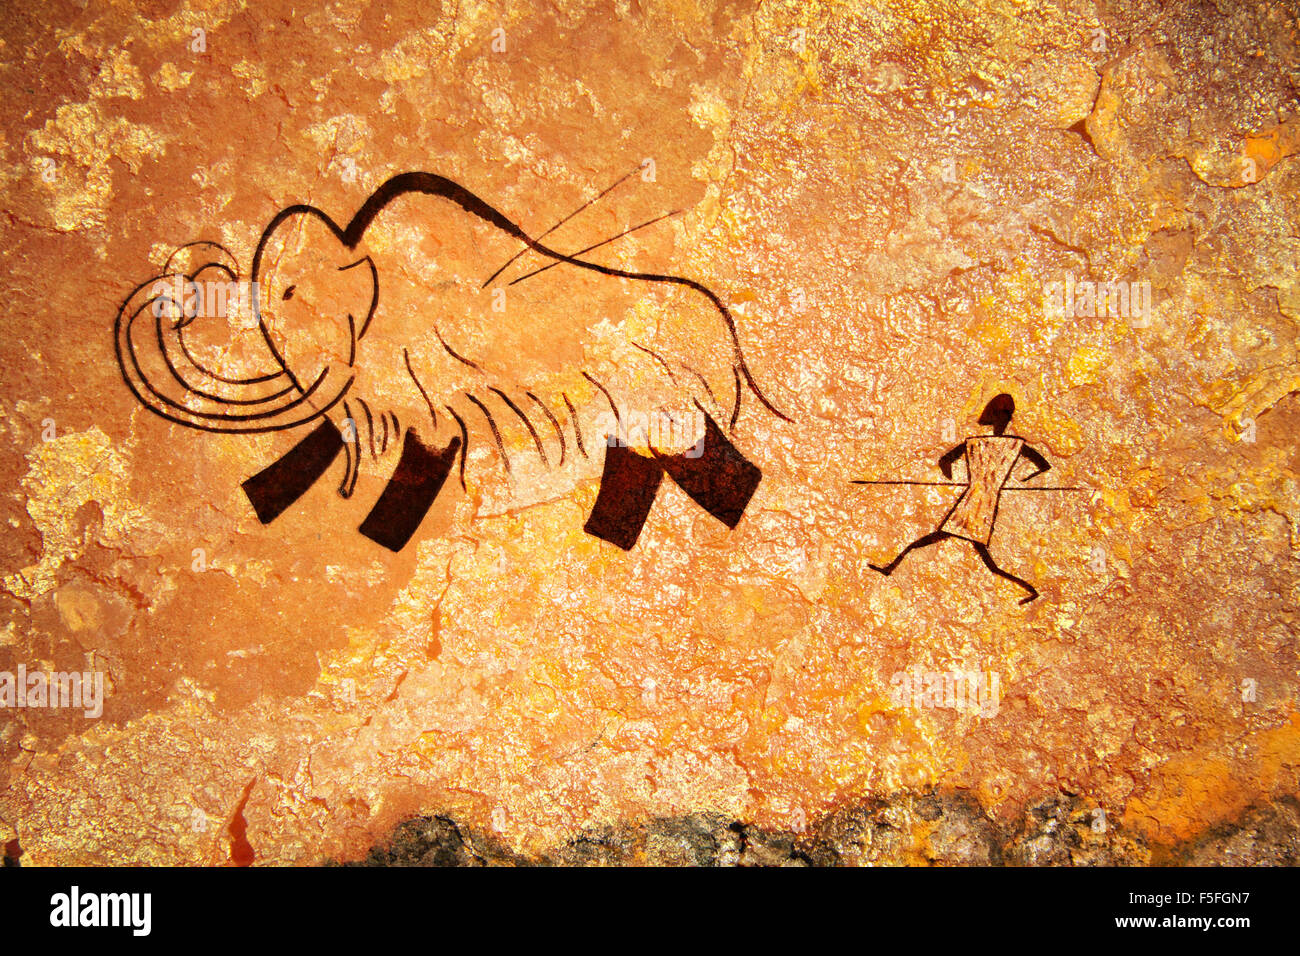 Cave painting of primitive hunt - Stock Image